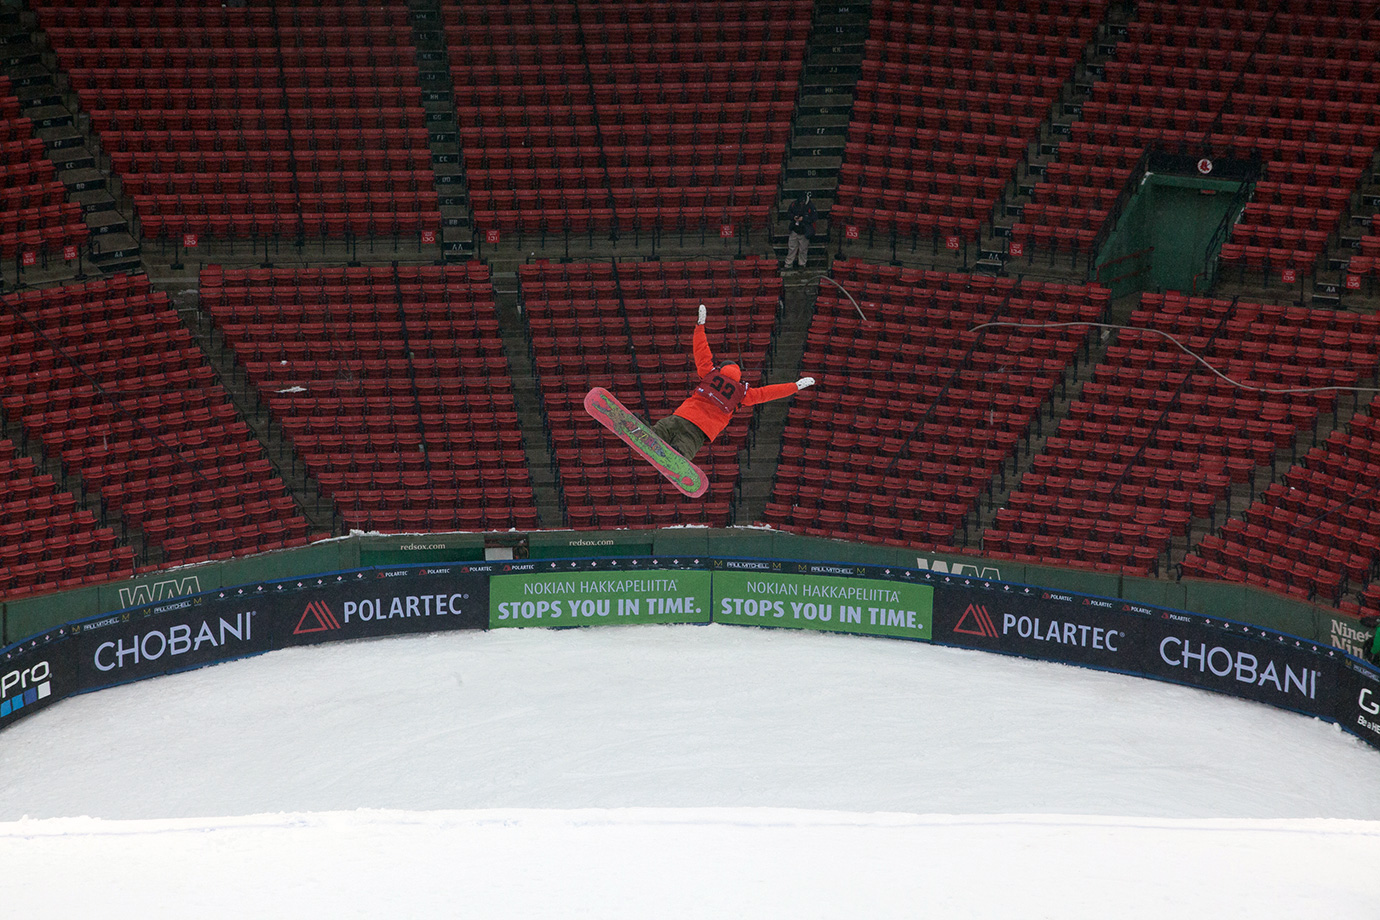 The athletes had a lot of fun with the novelty of holding a big air event in Boston's Fenway Park.